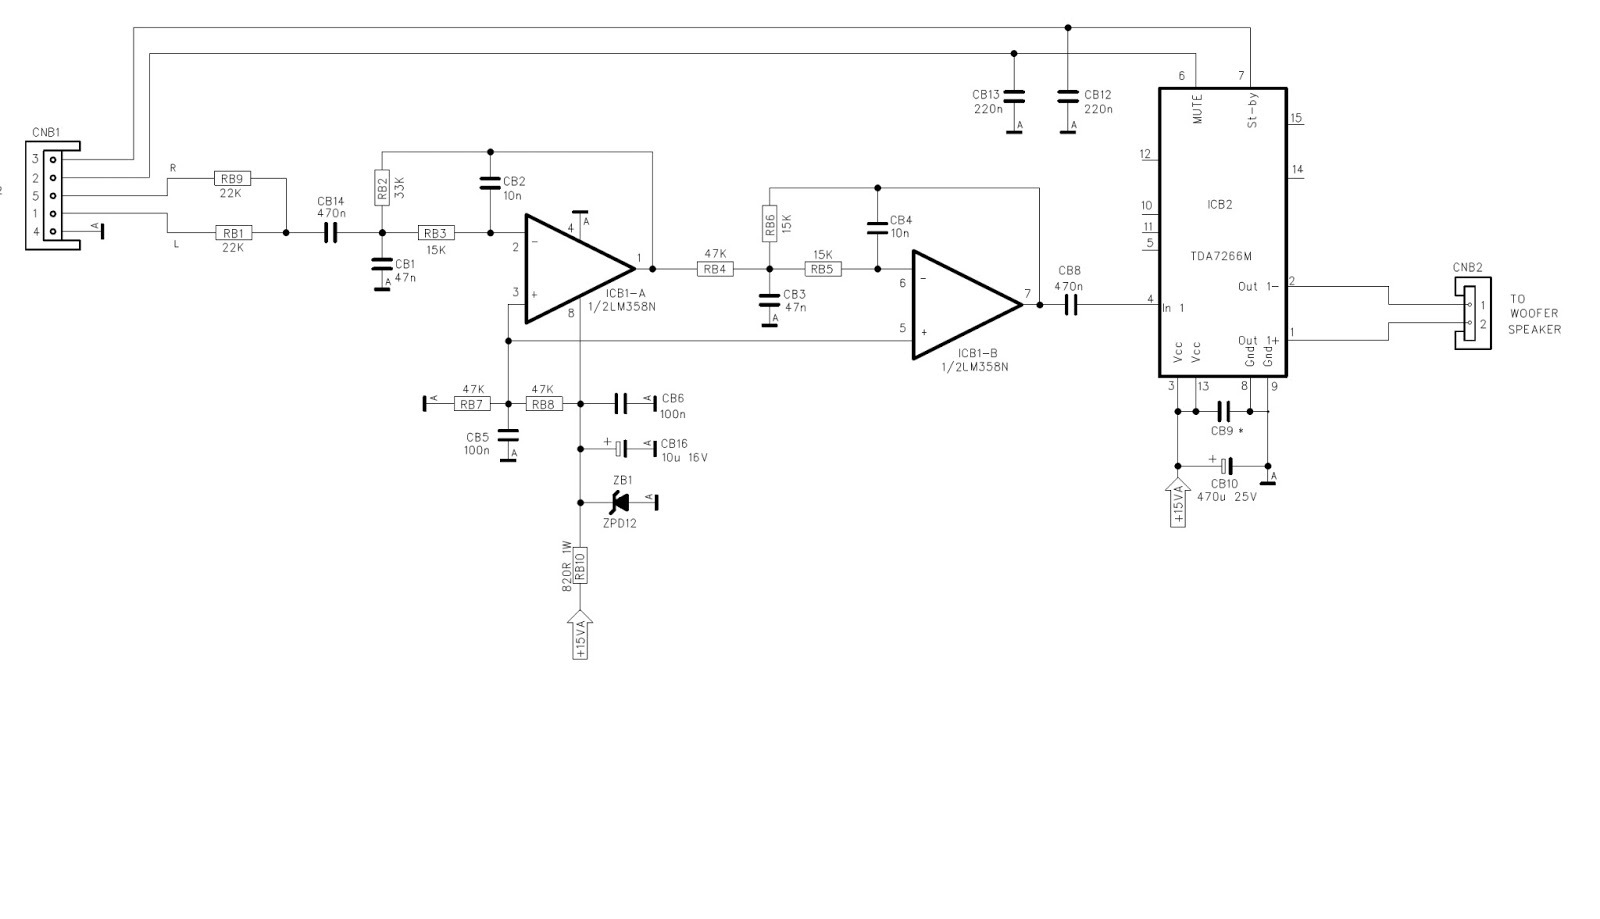 Circuit For Amplifier With Woofer Dual Ne5532 Subwoofer Processing Low Pass Filter Board